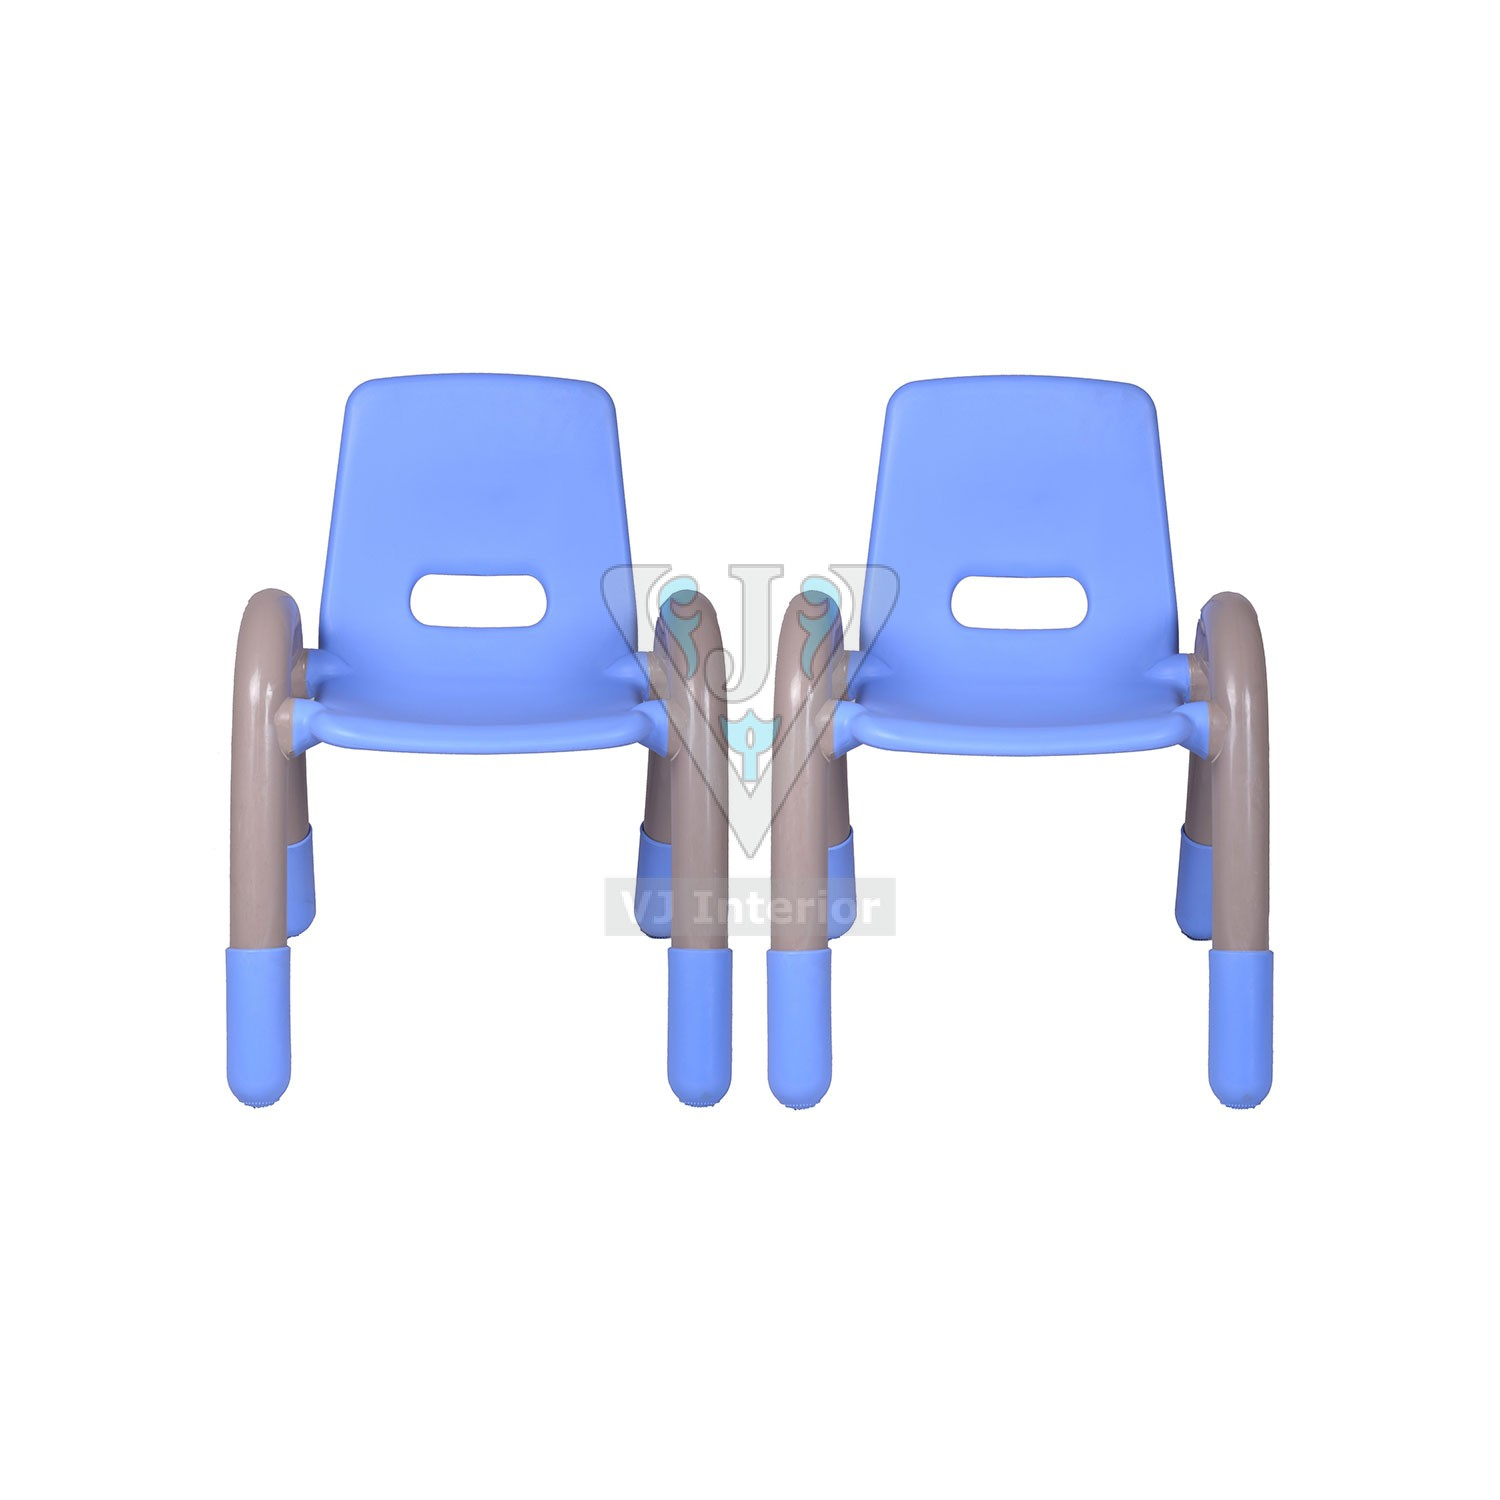 Plastic Kids Chairs The Volver Engineering Plastic Kids Chair Blue